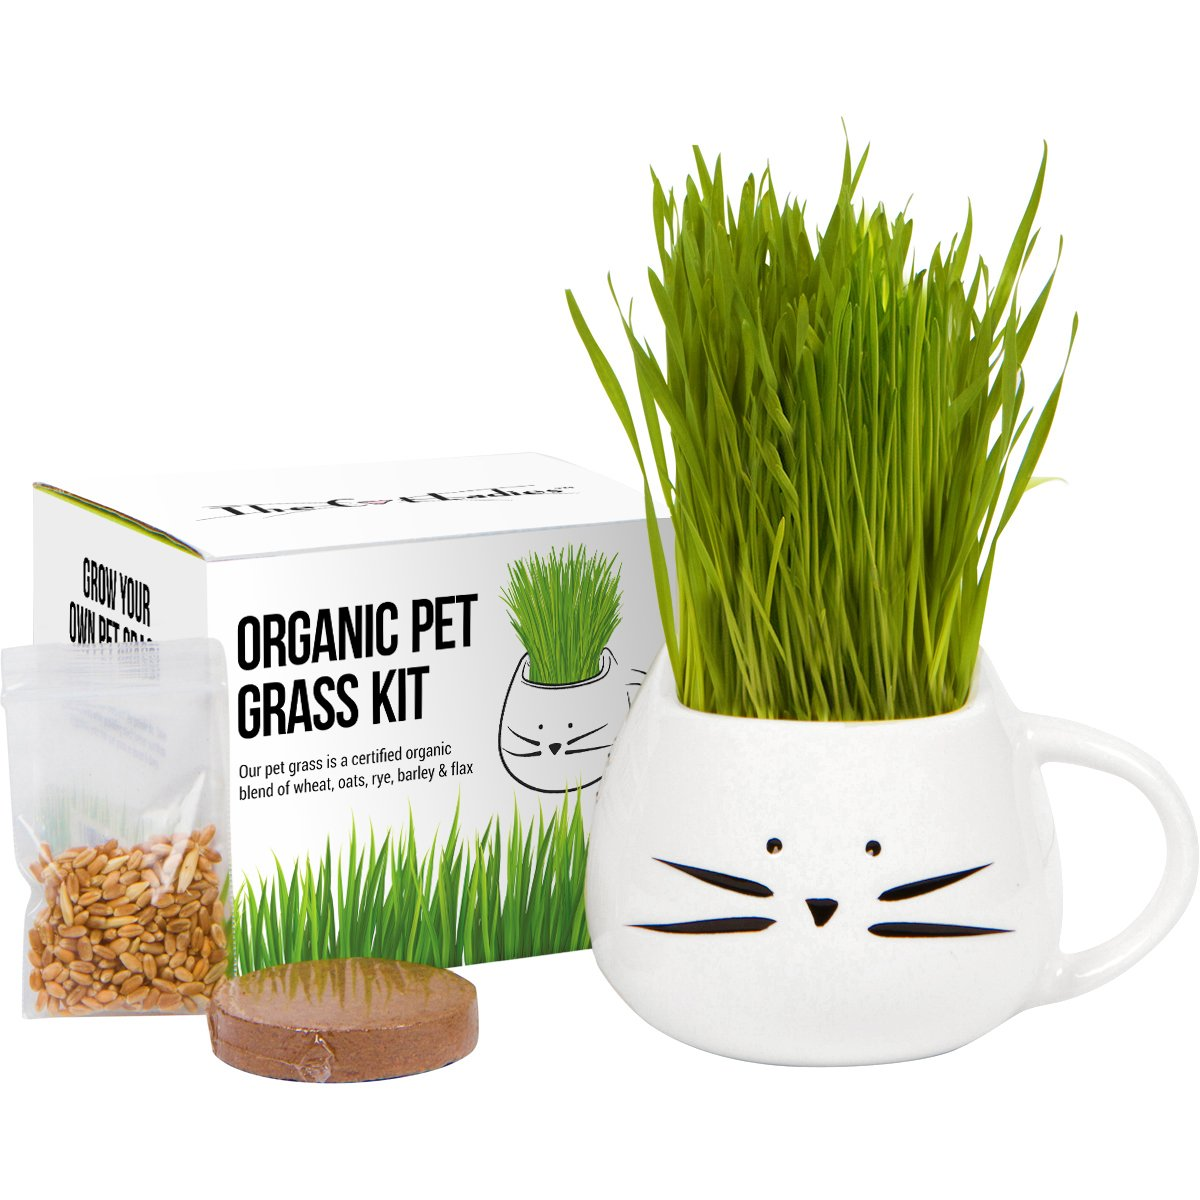 Organic Cat Grass Growing kit with Organic Seed Mix, Organic Soil and Cat Planter. Natural Hairball Control and Remedy. Manufactured in The USA. by The Cat Ladies